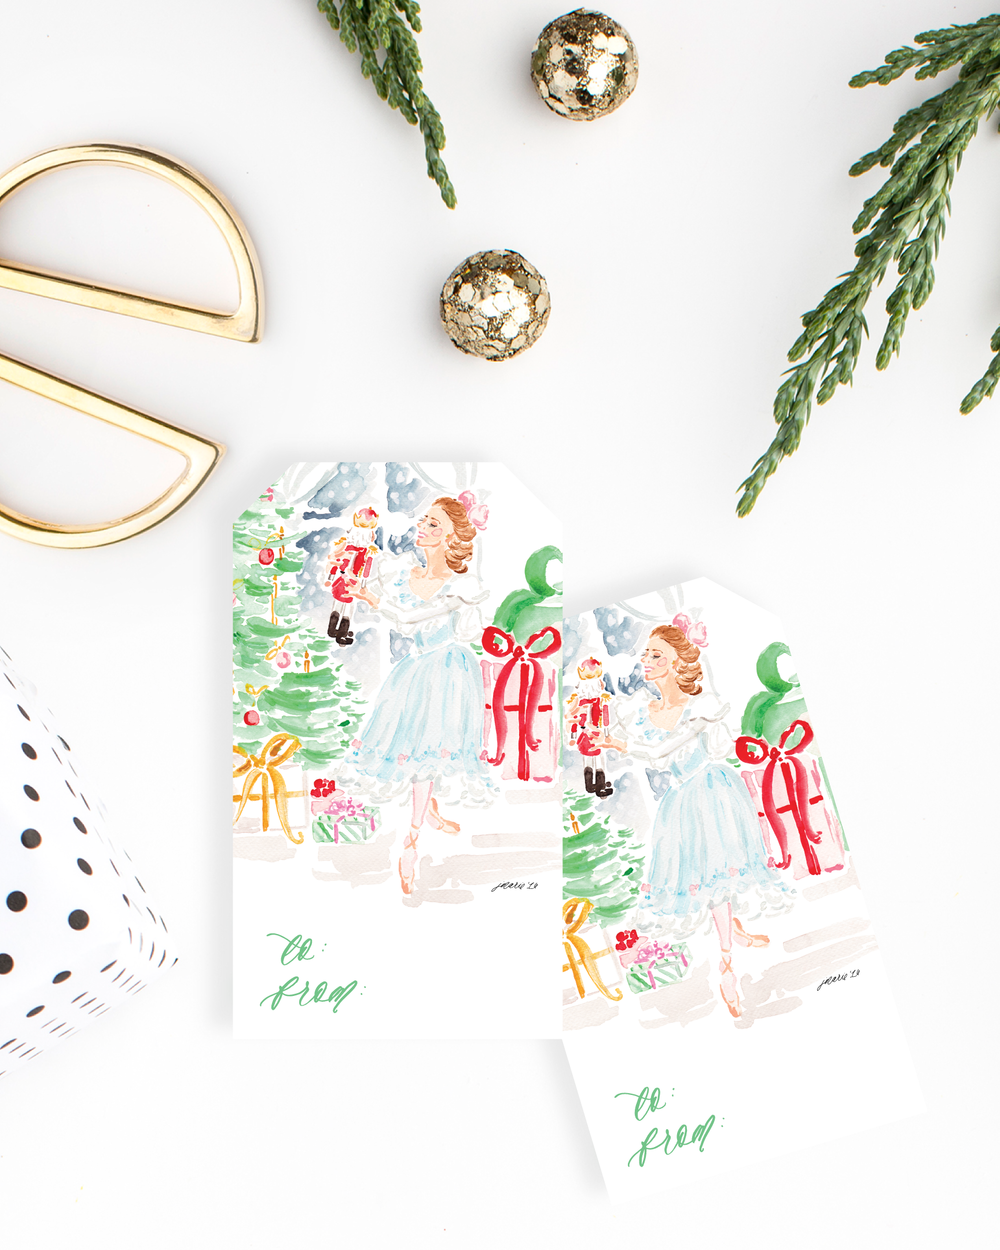 Copy of Copy of The Nutcracker Watercolor Gift Tags Variety Set Illustrated by Simply Jessica Marie | Top Tips for Using Styled Stock Photos for Shop Owners | SC Stockshop